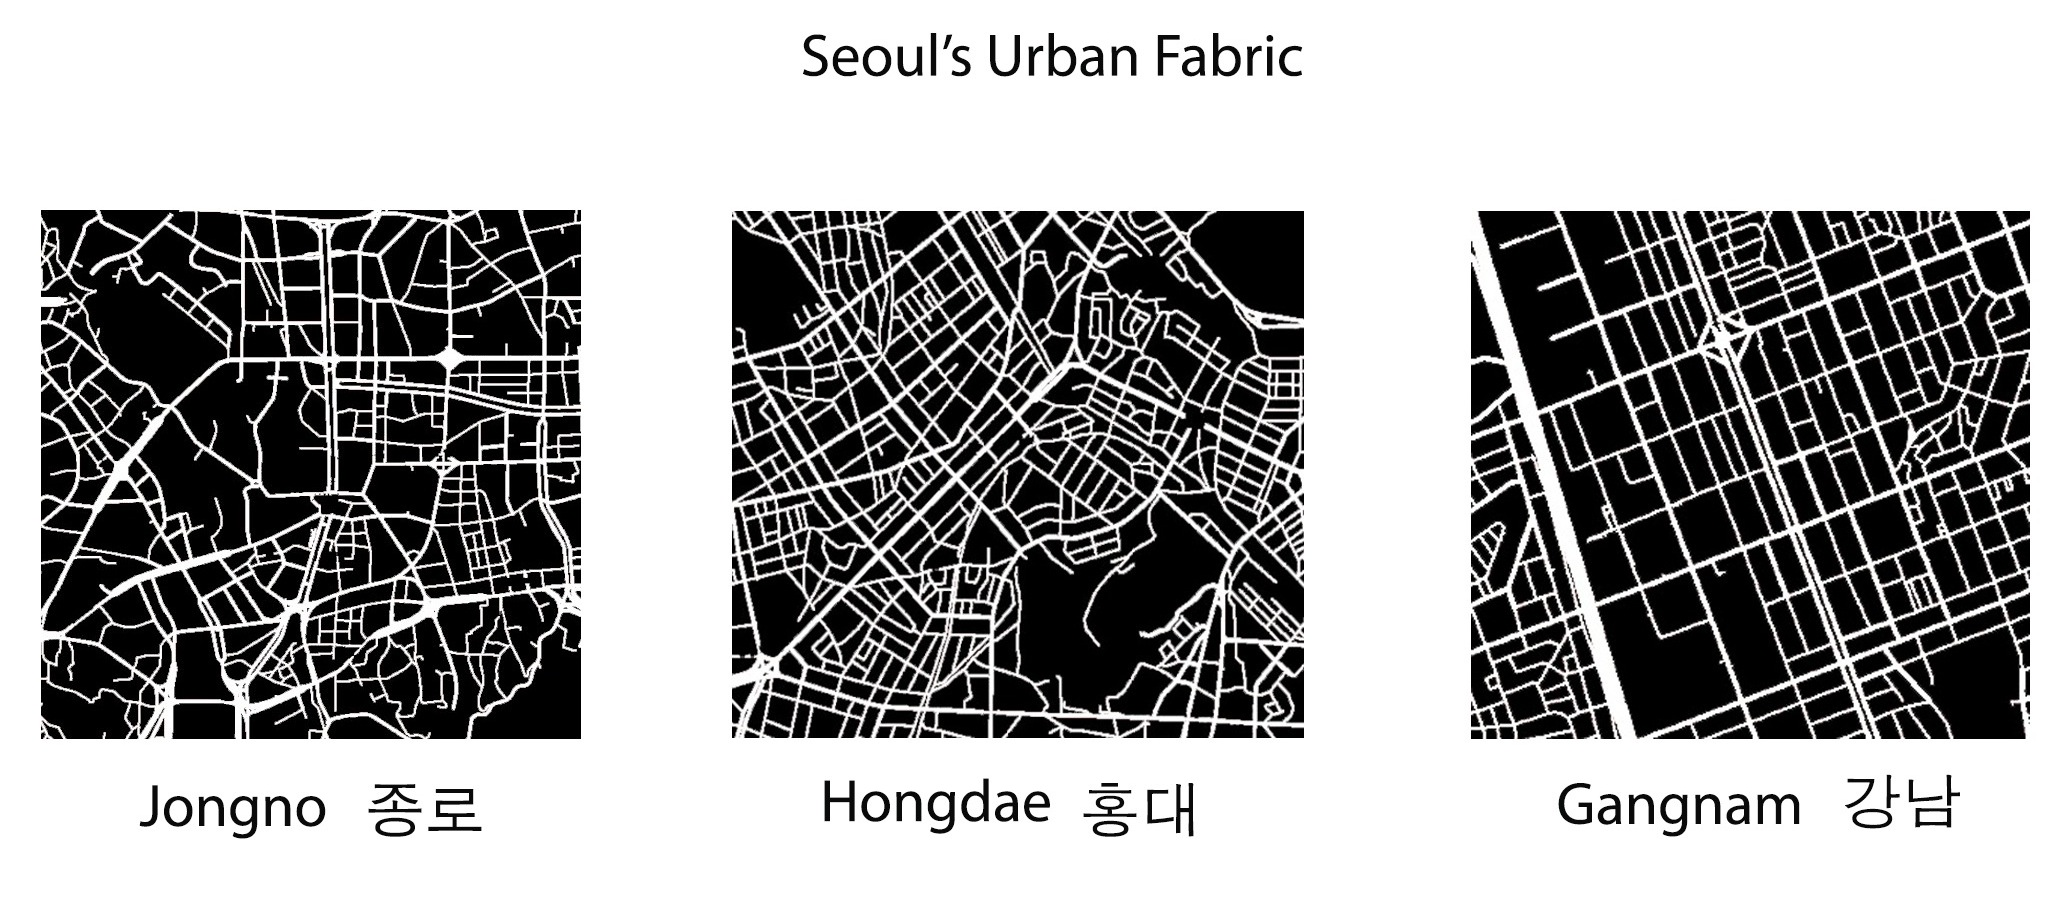 Seoul's urban fabric: 3 neighborhoods